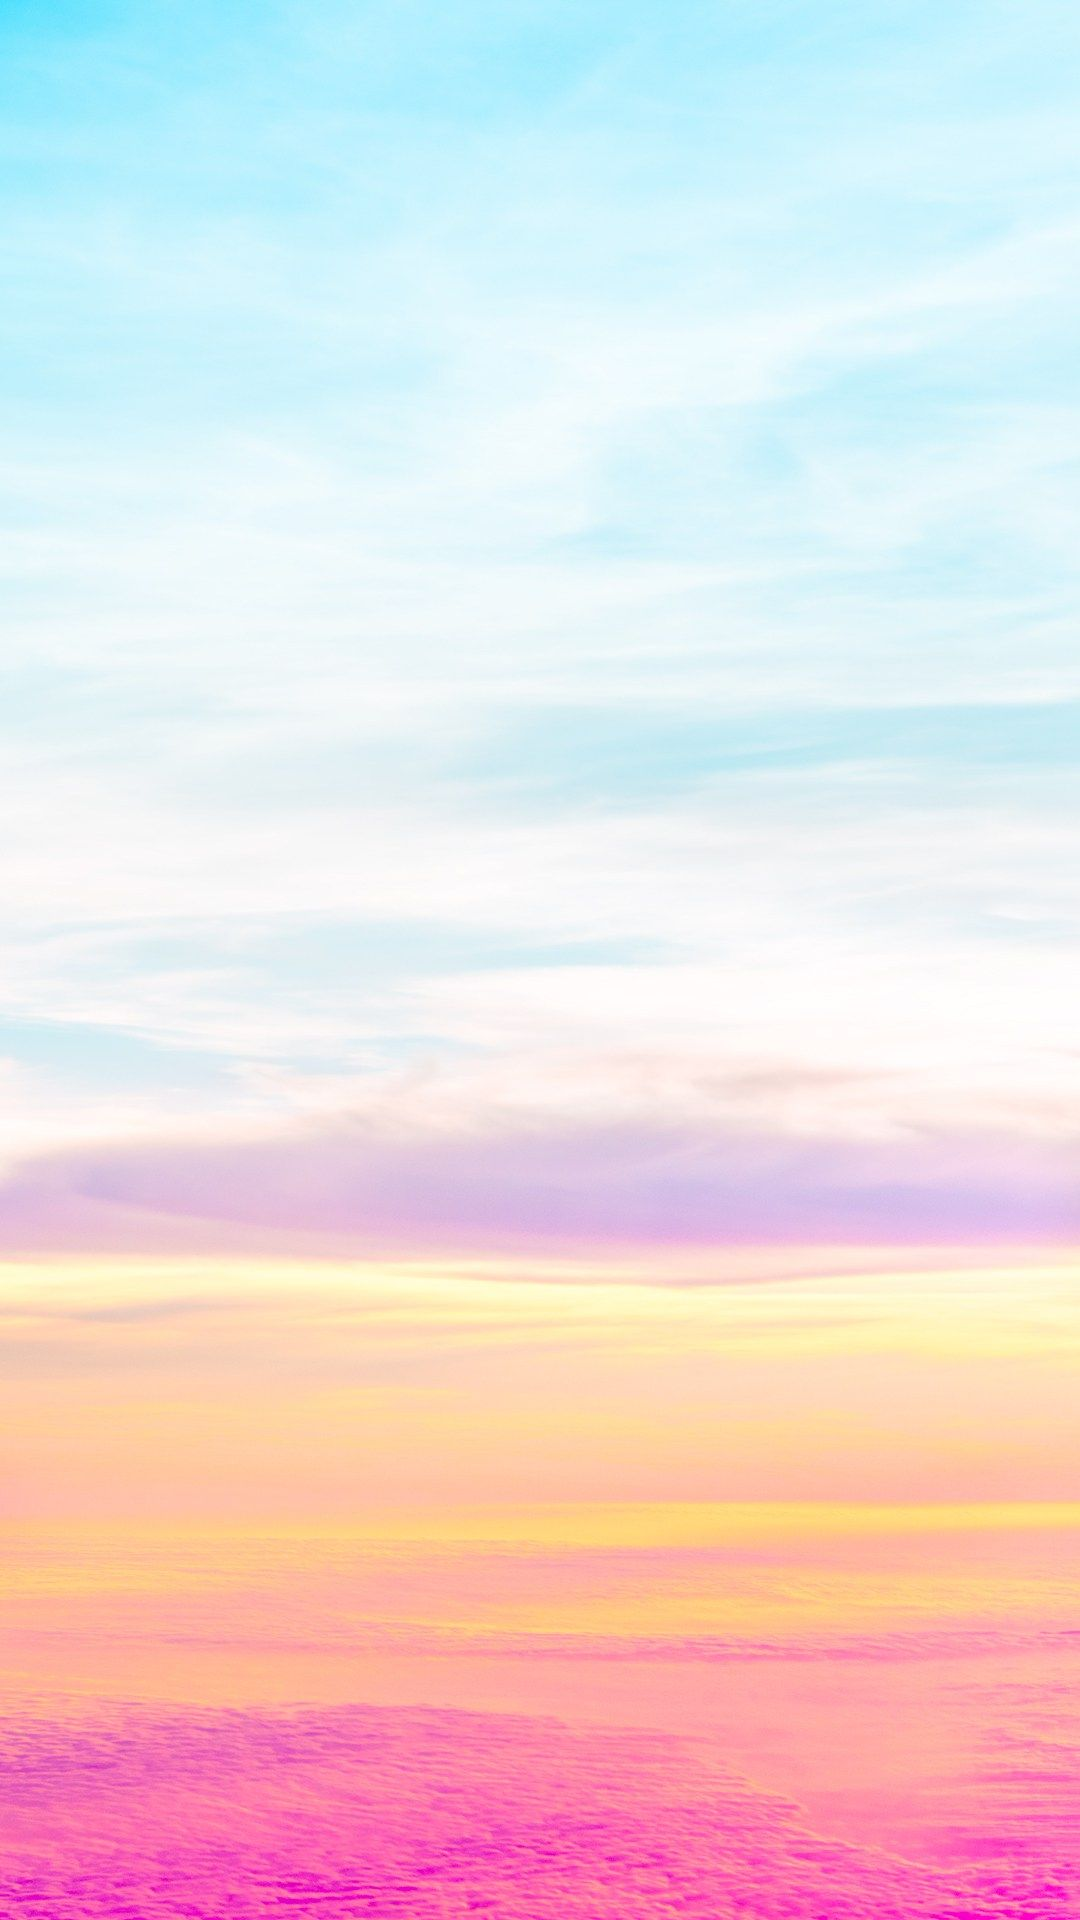 Beautiful Pastel Sky iPhone 6 wallpaper 夏 壁紙